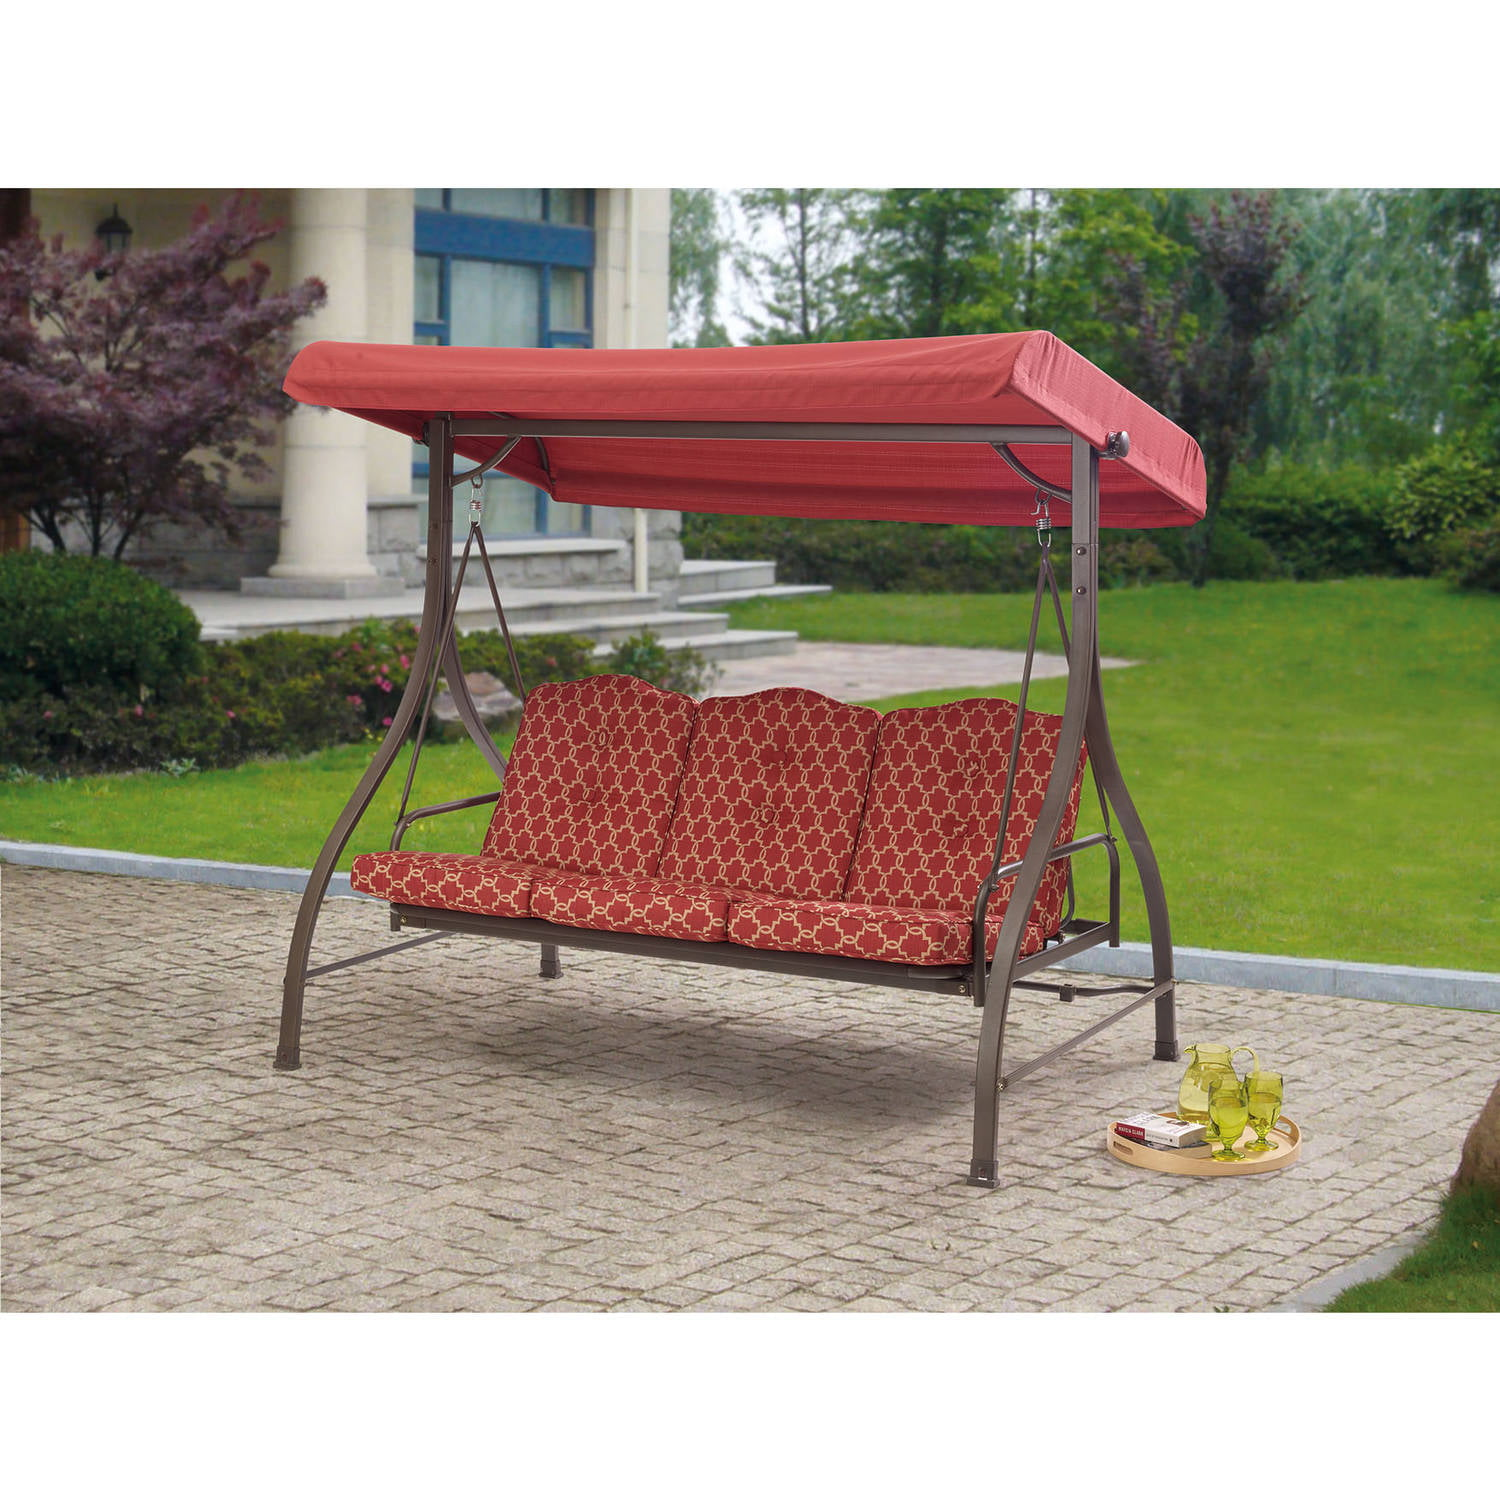 Mainstays Classic Outdoor Sling Swing, Tan, Seats 3   Walmart.com